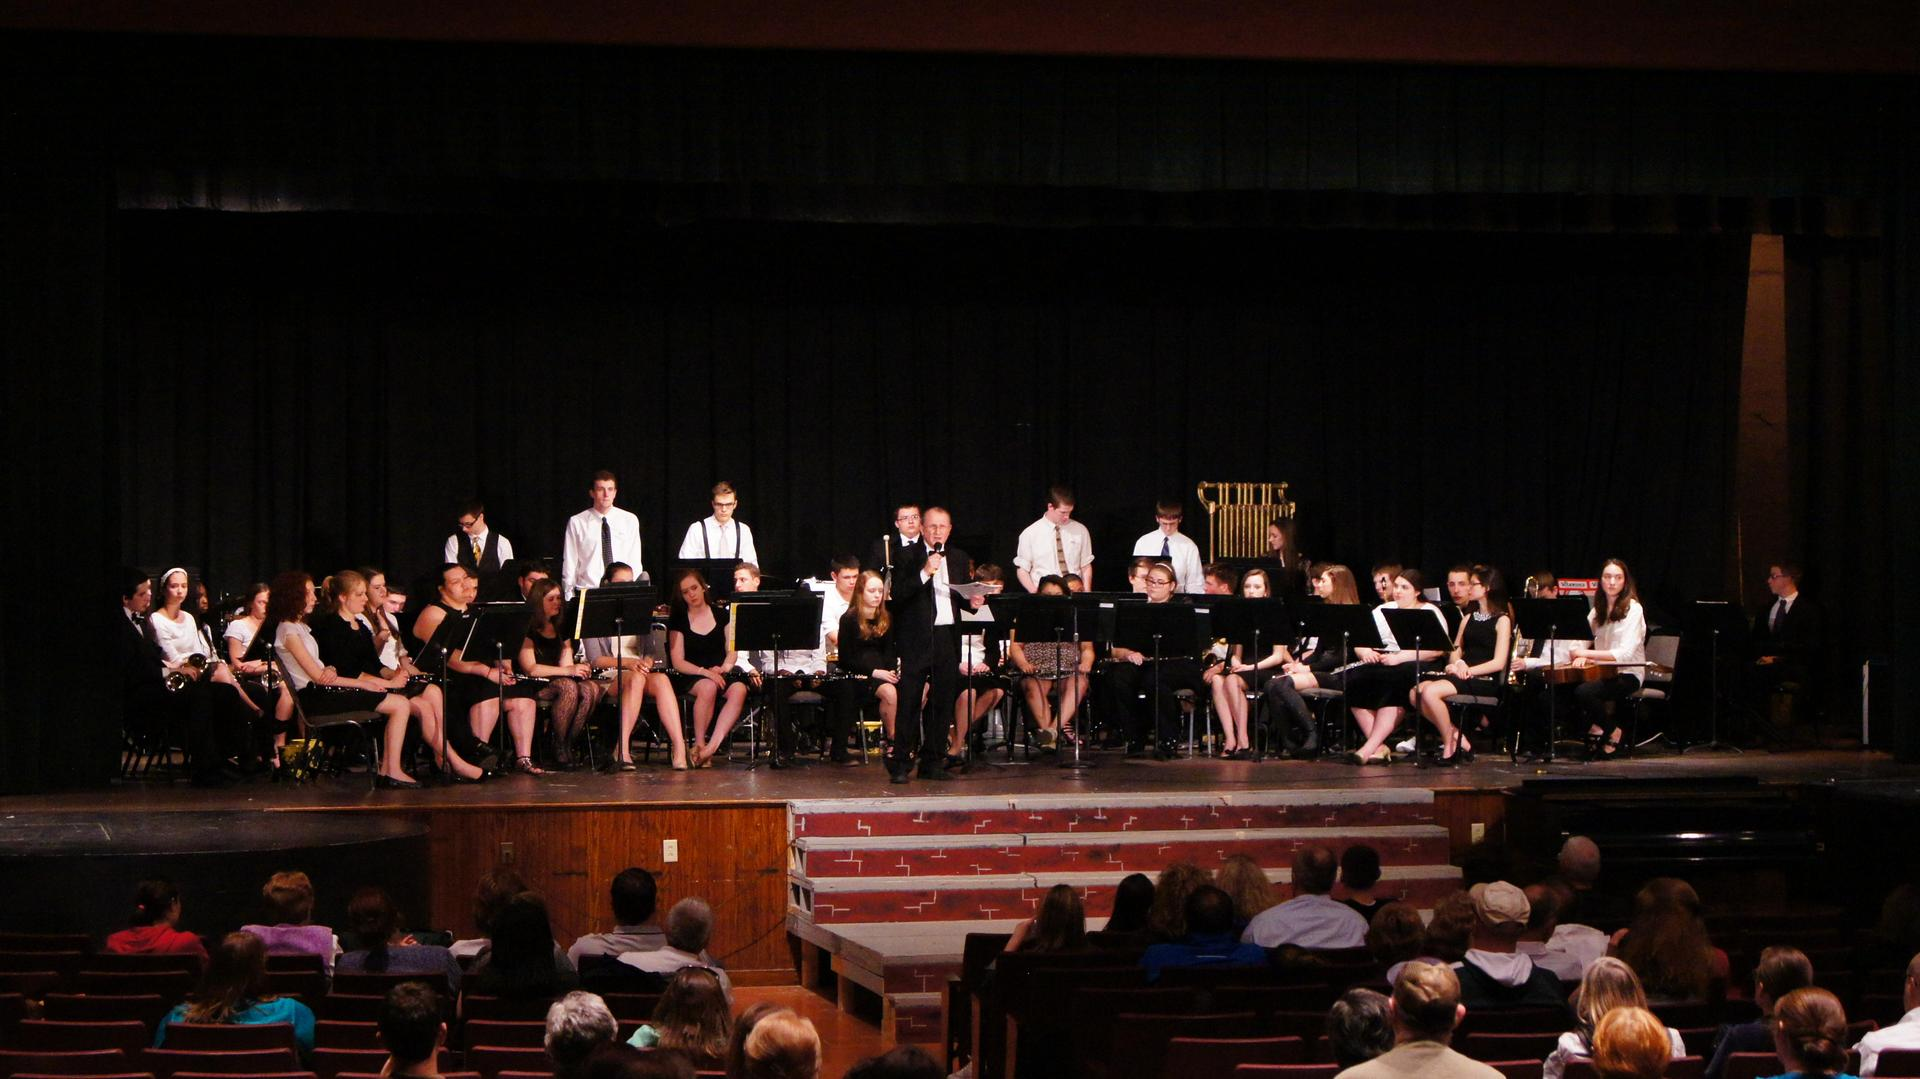 Concert Band performs in the auditorium